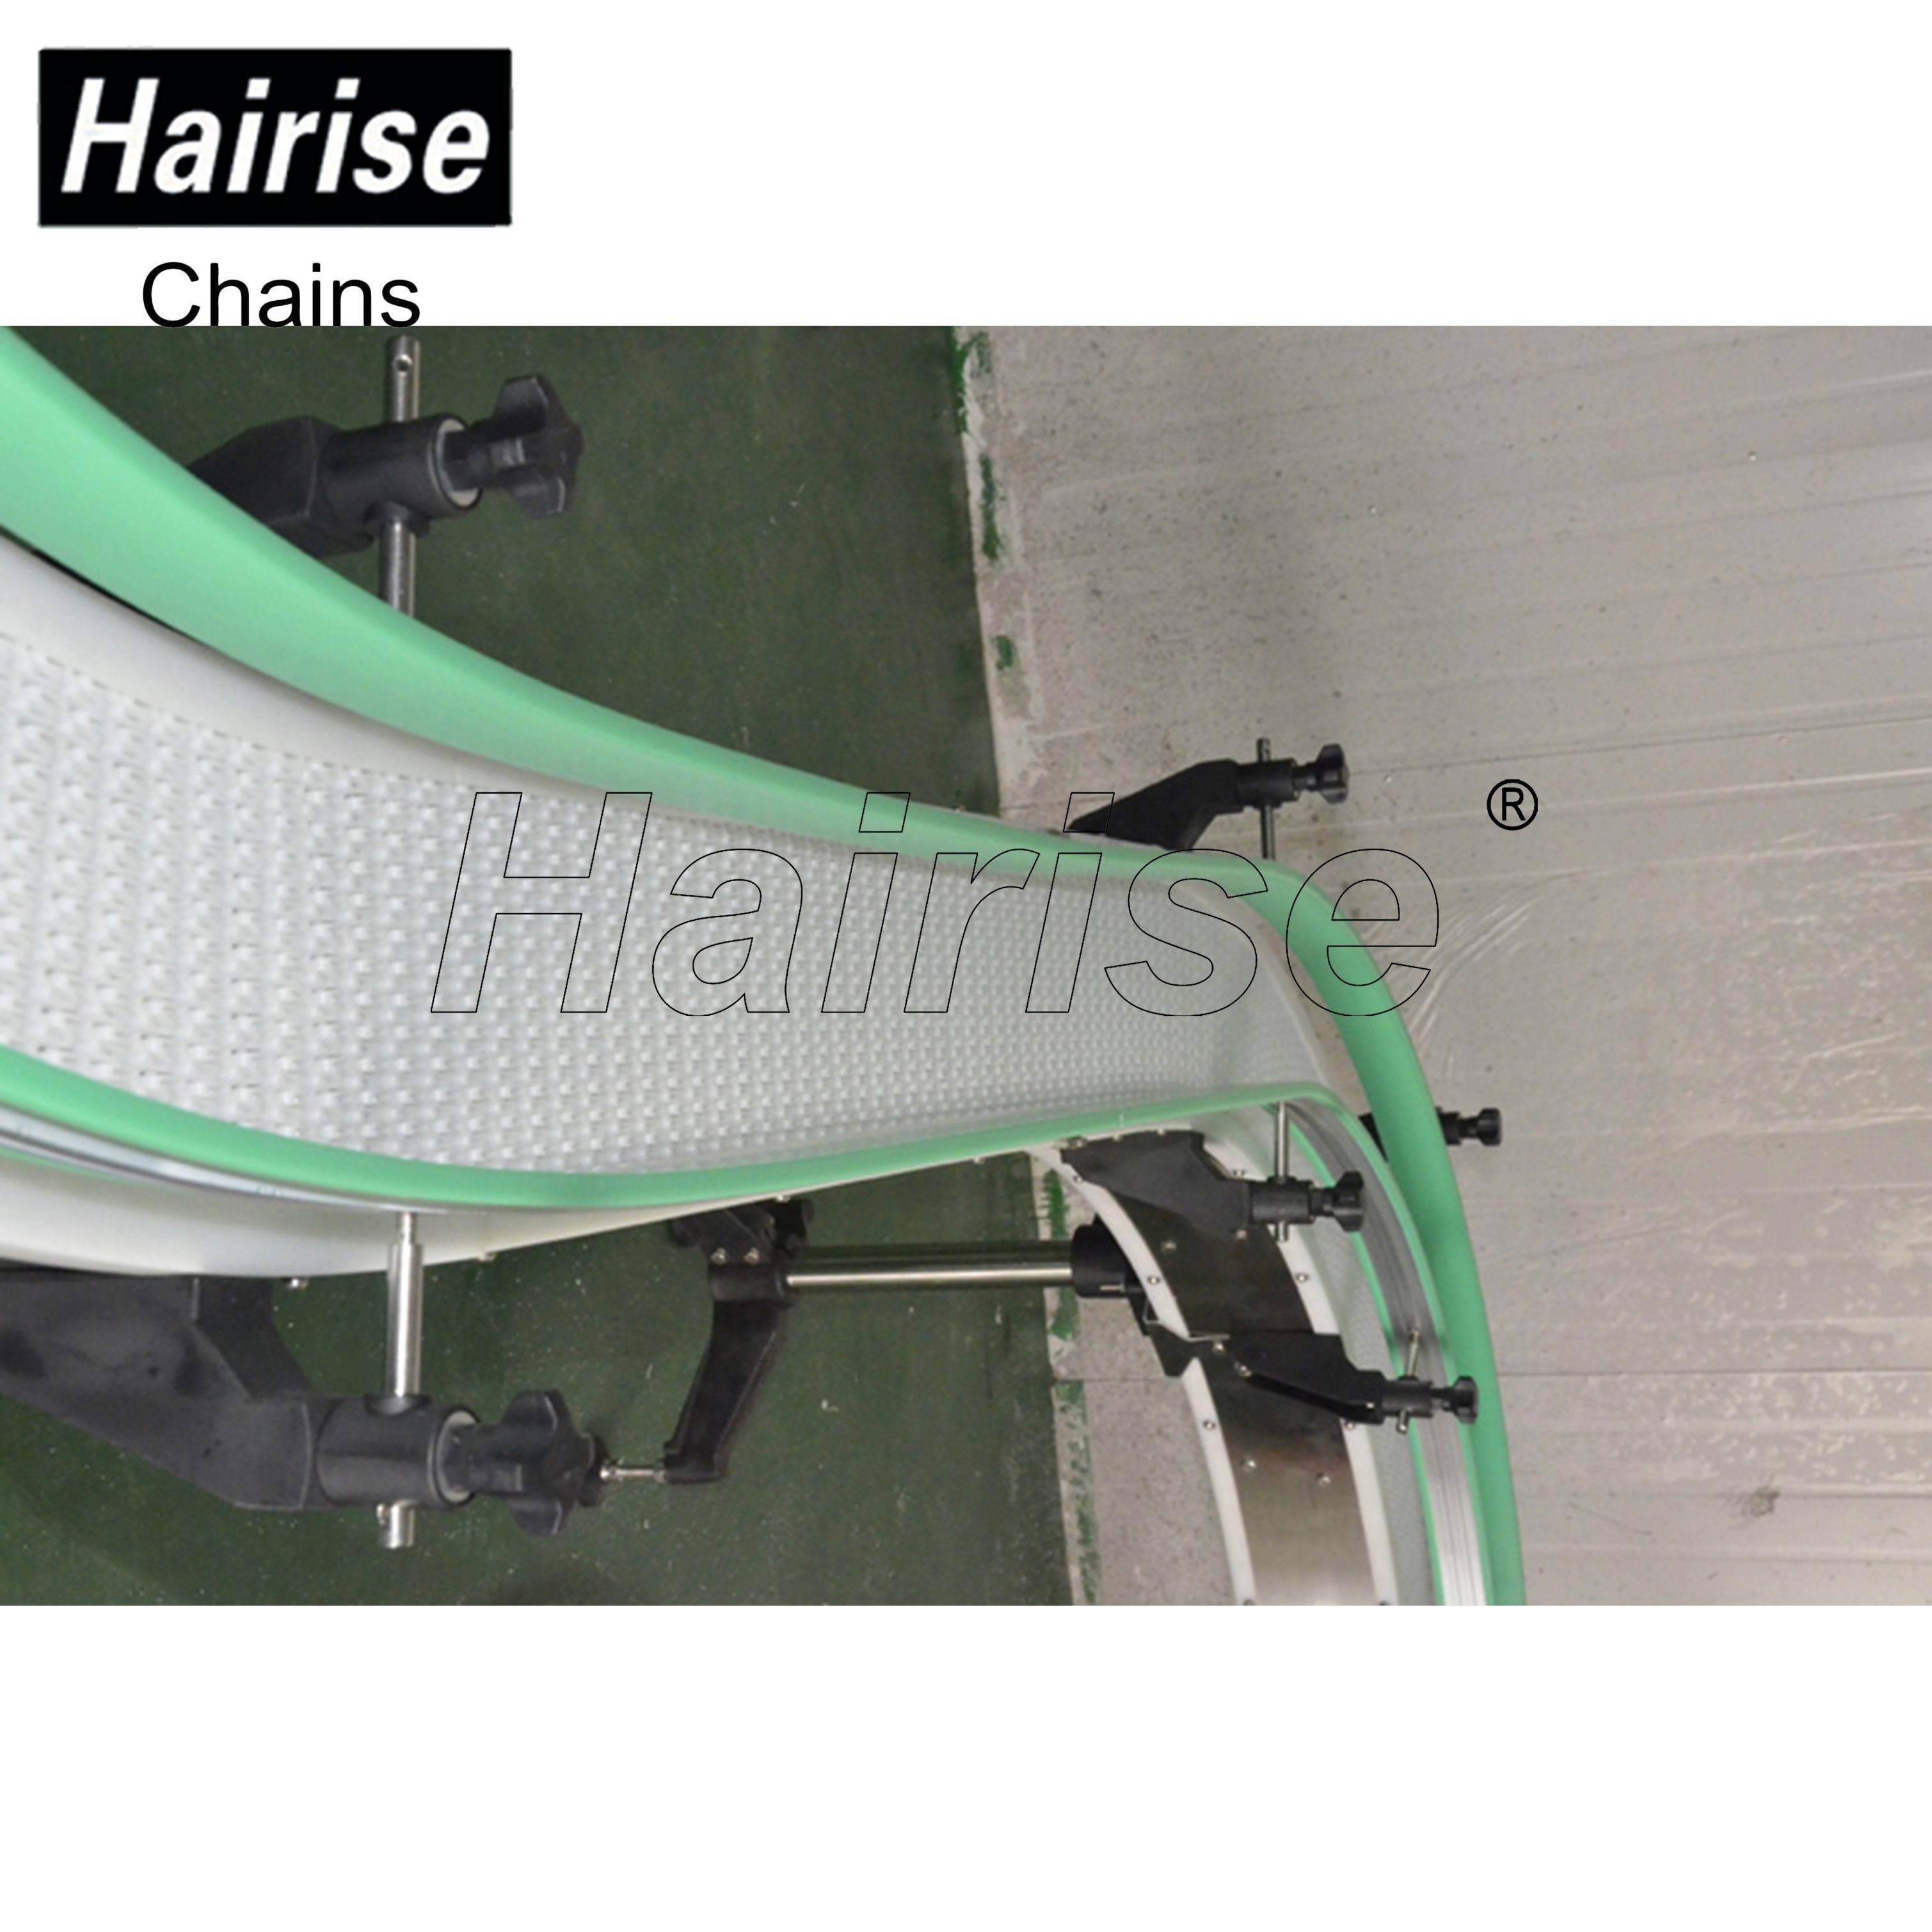 Hairise White Modular Belt Conveyor with S Curve